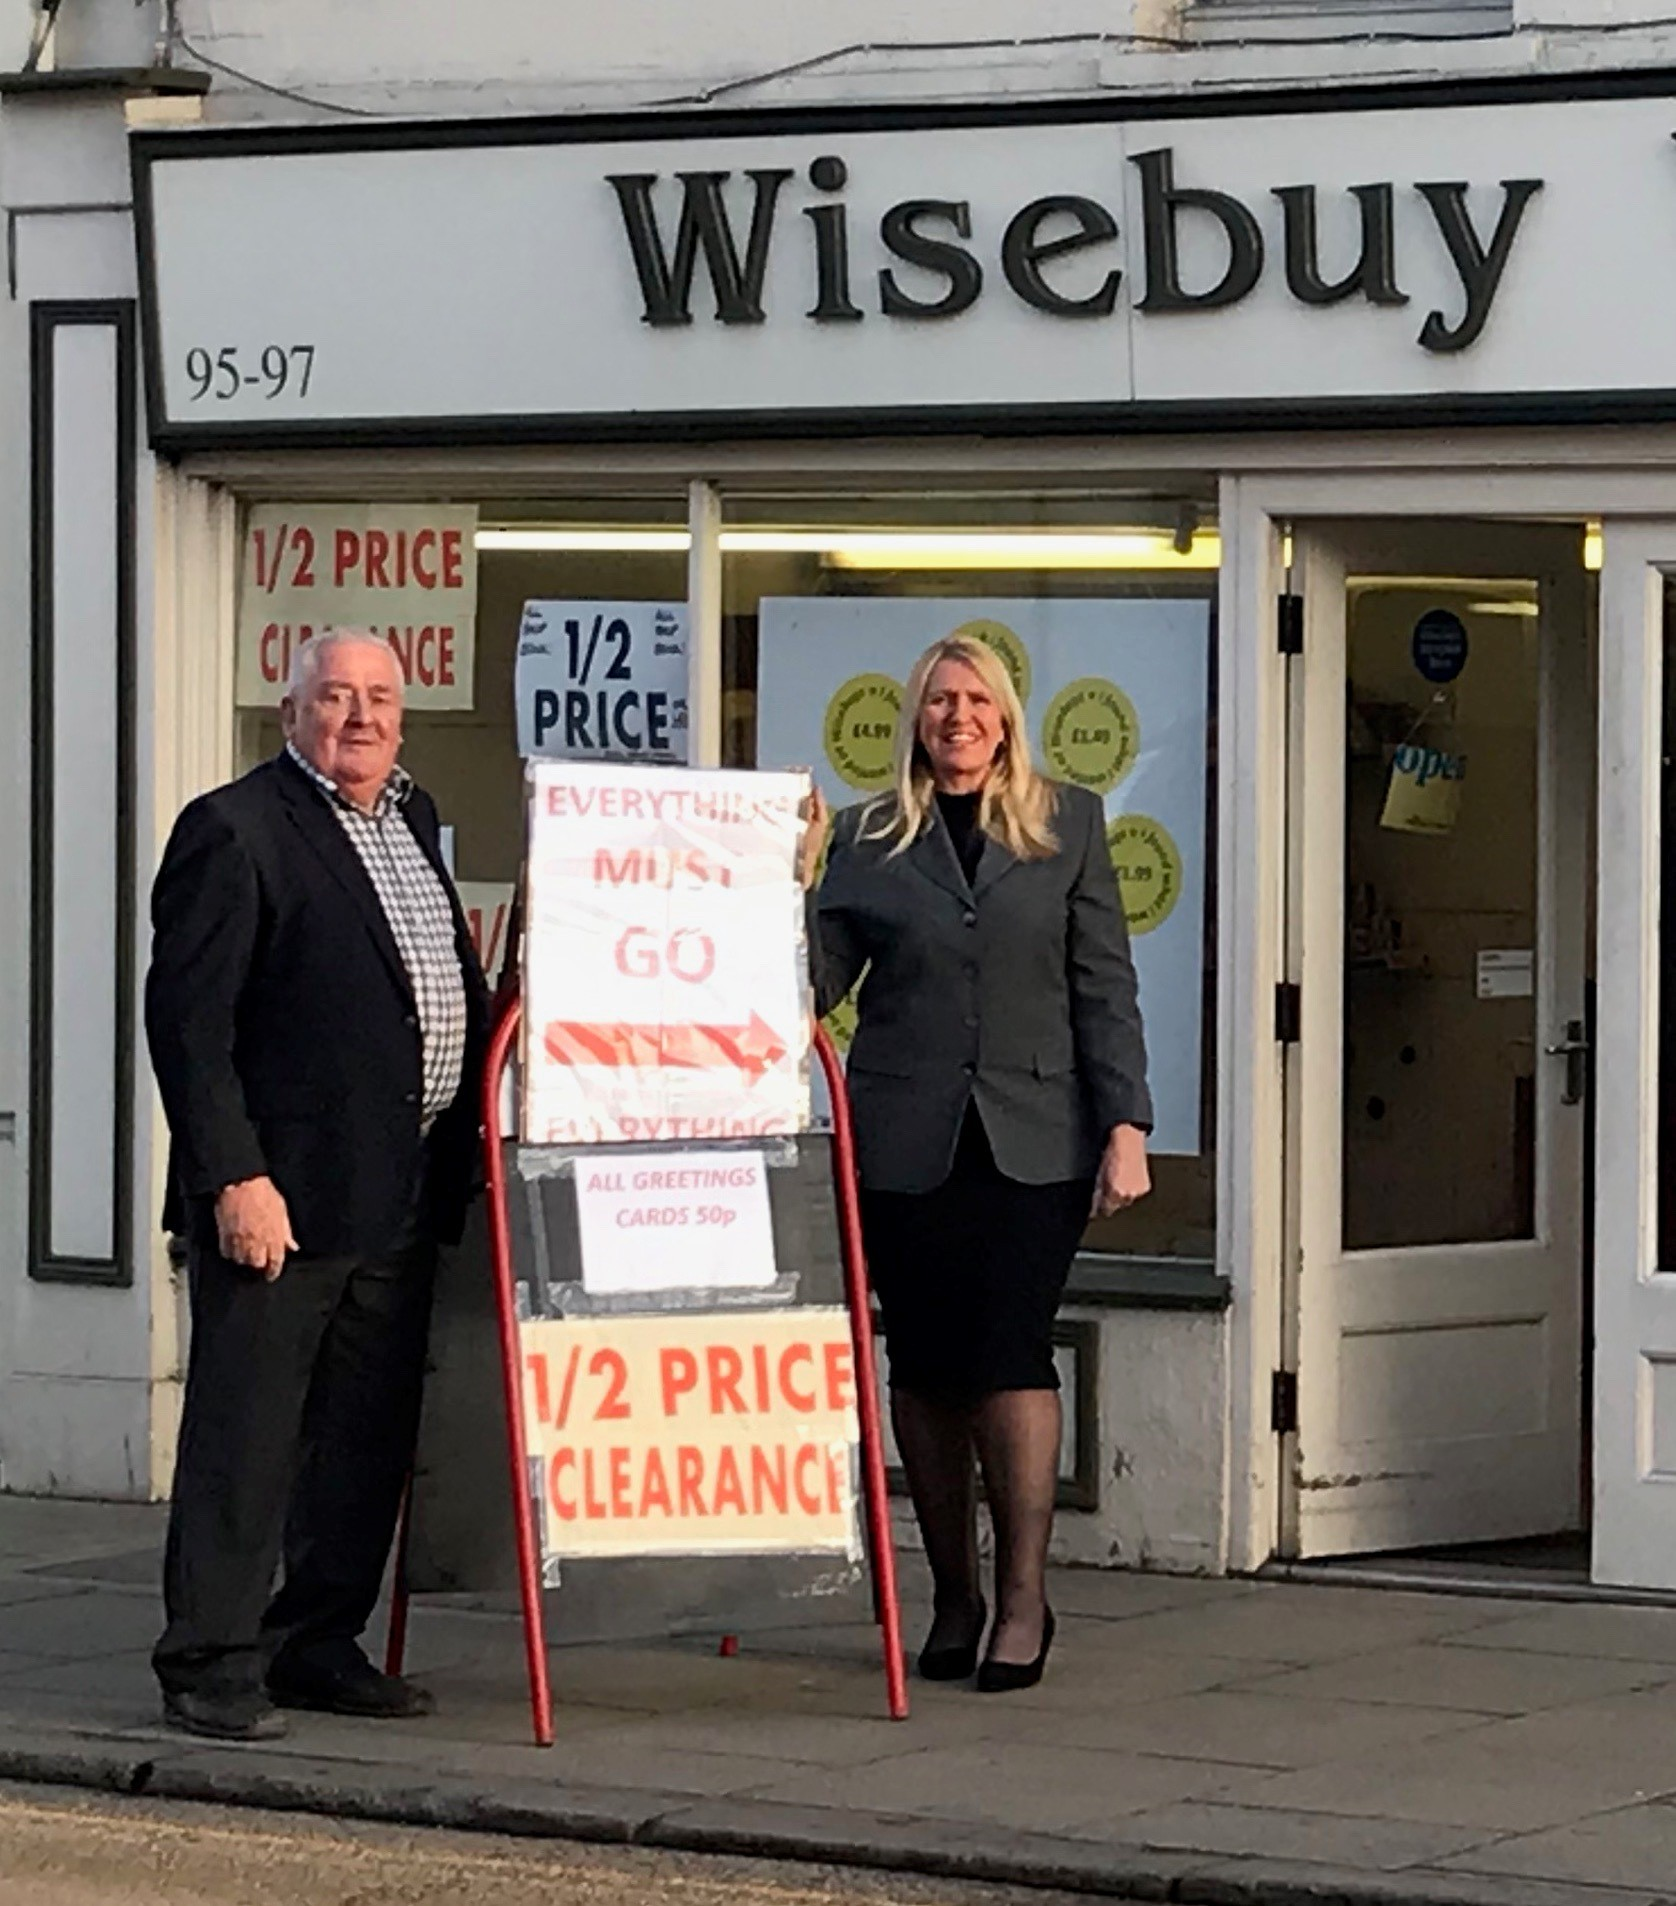 GOODBYE: Wisebuys is closing after 29 years in Halstead